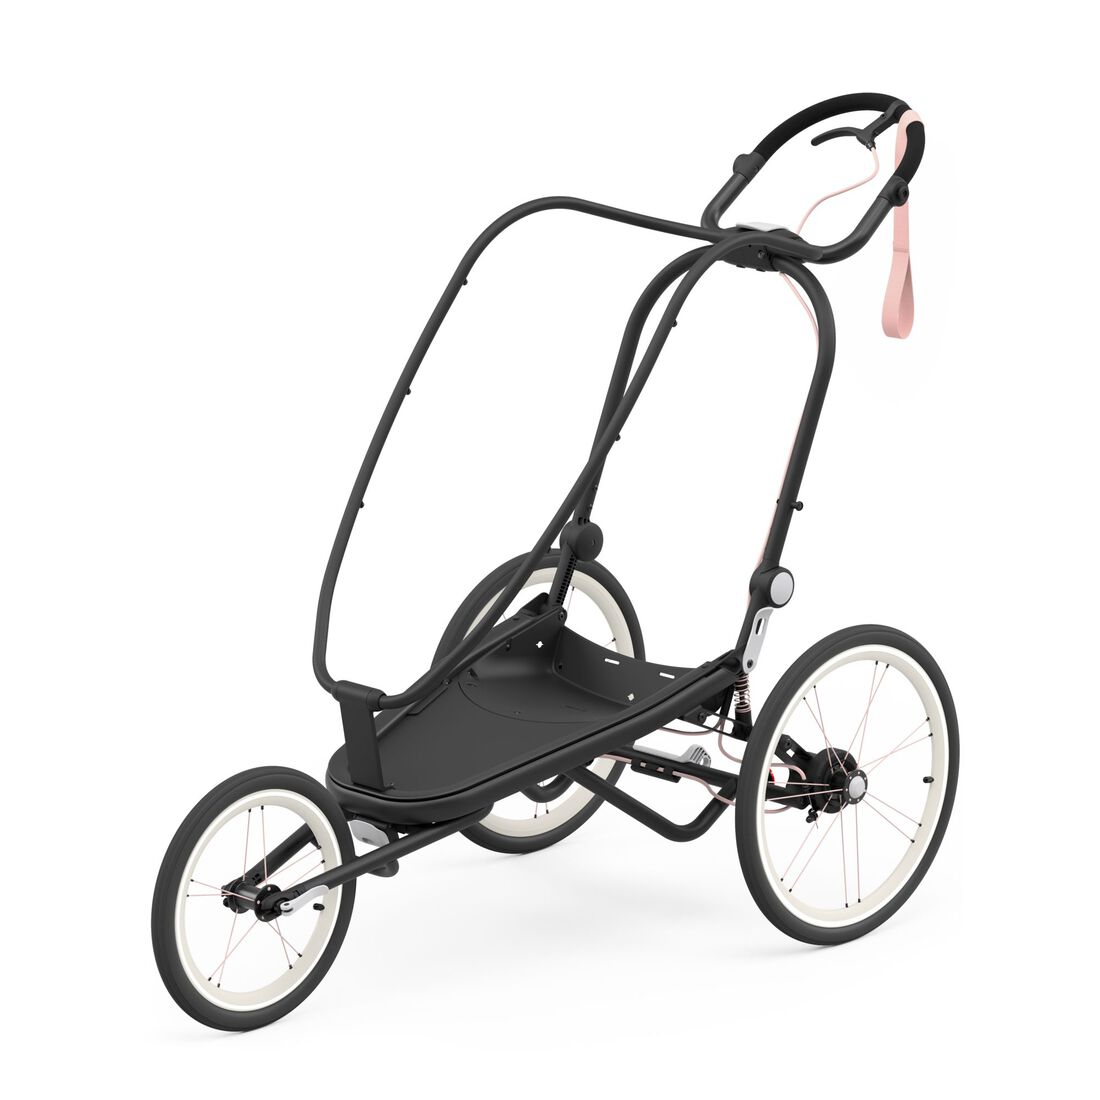 CYBEX Zeno Frame - Black With Pink Details in Black With Pink Details large image number 1